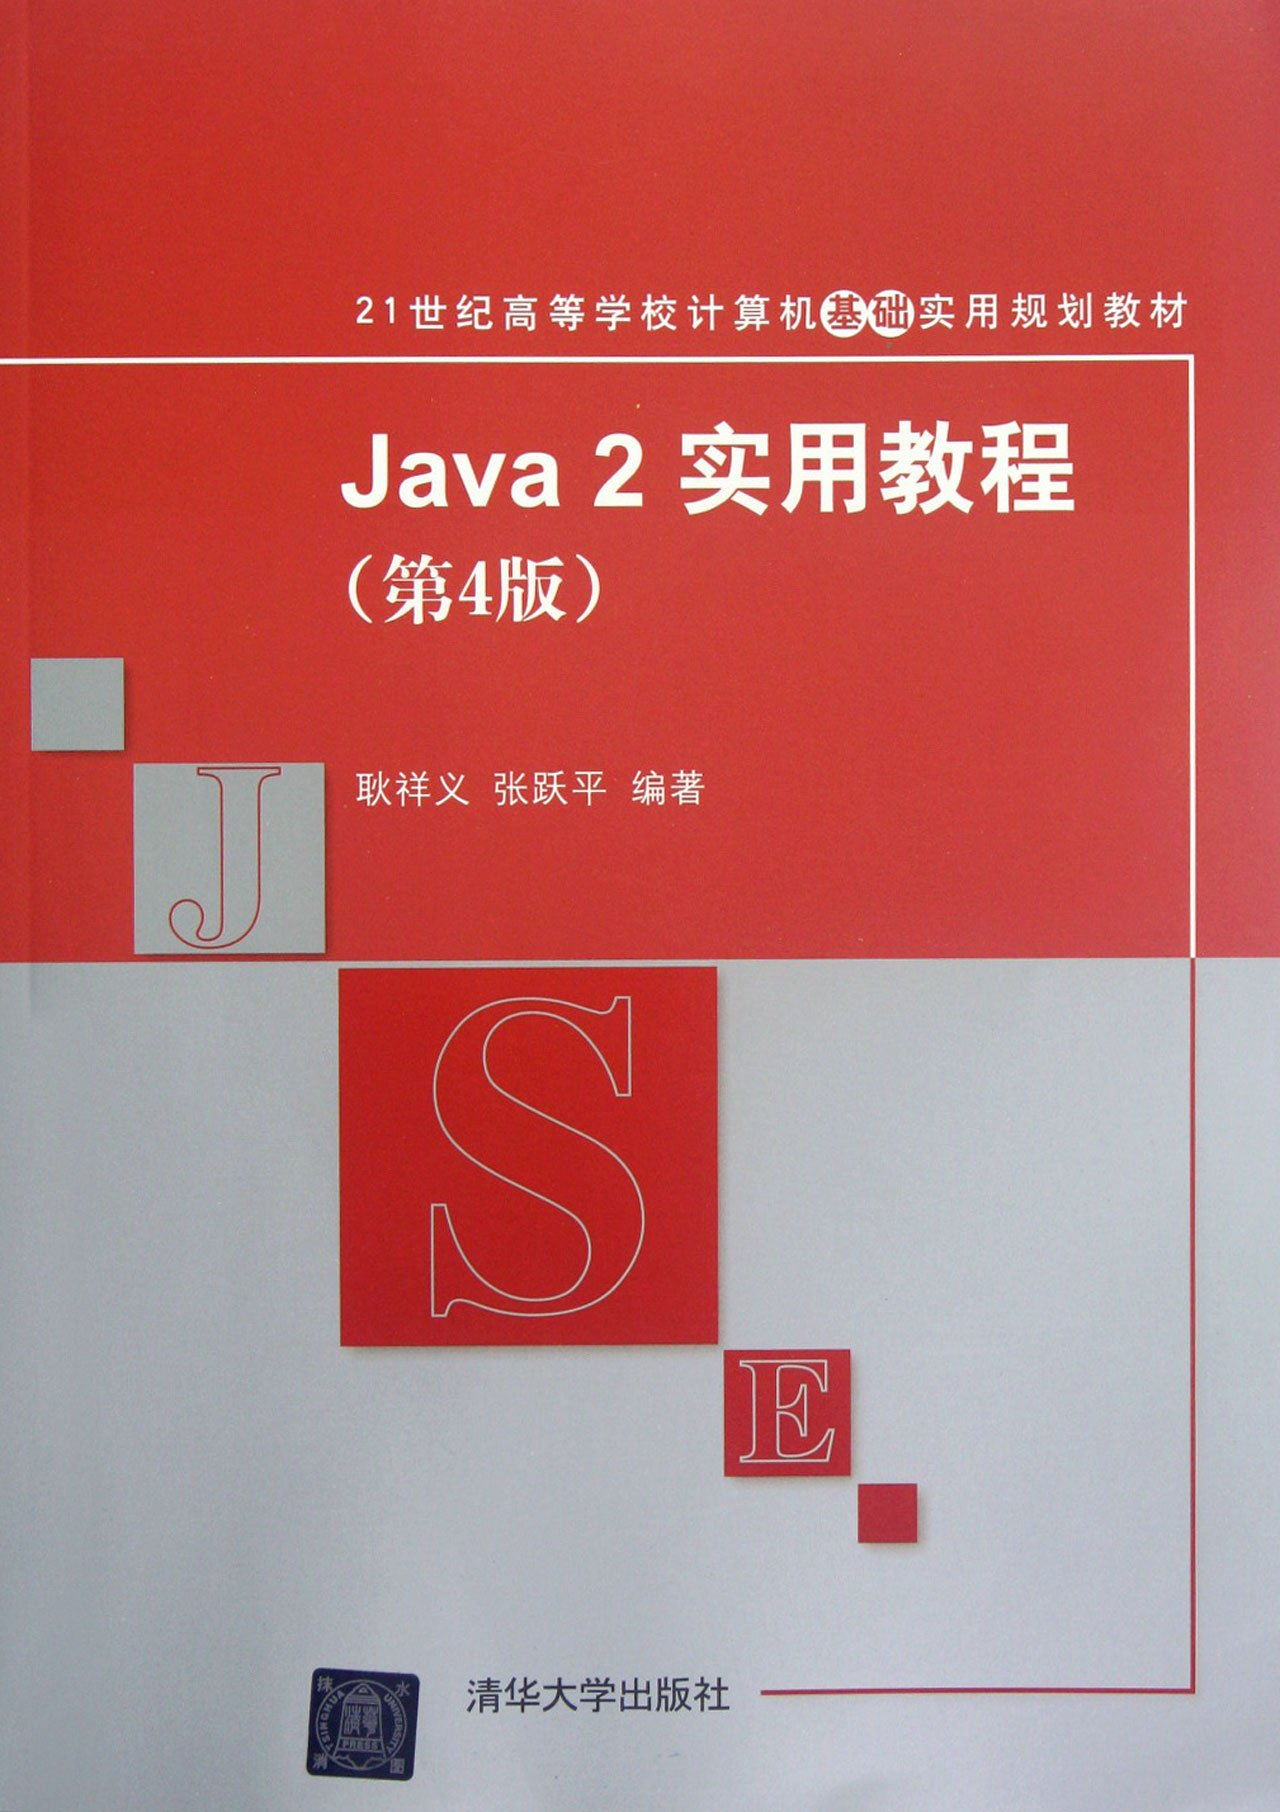 Pratical Coursebook on Java2(fourth edition of the 21st century higher education computer practical planning material) (Chinese Edition) pdf epub